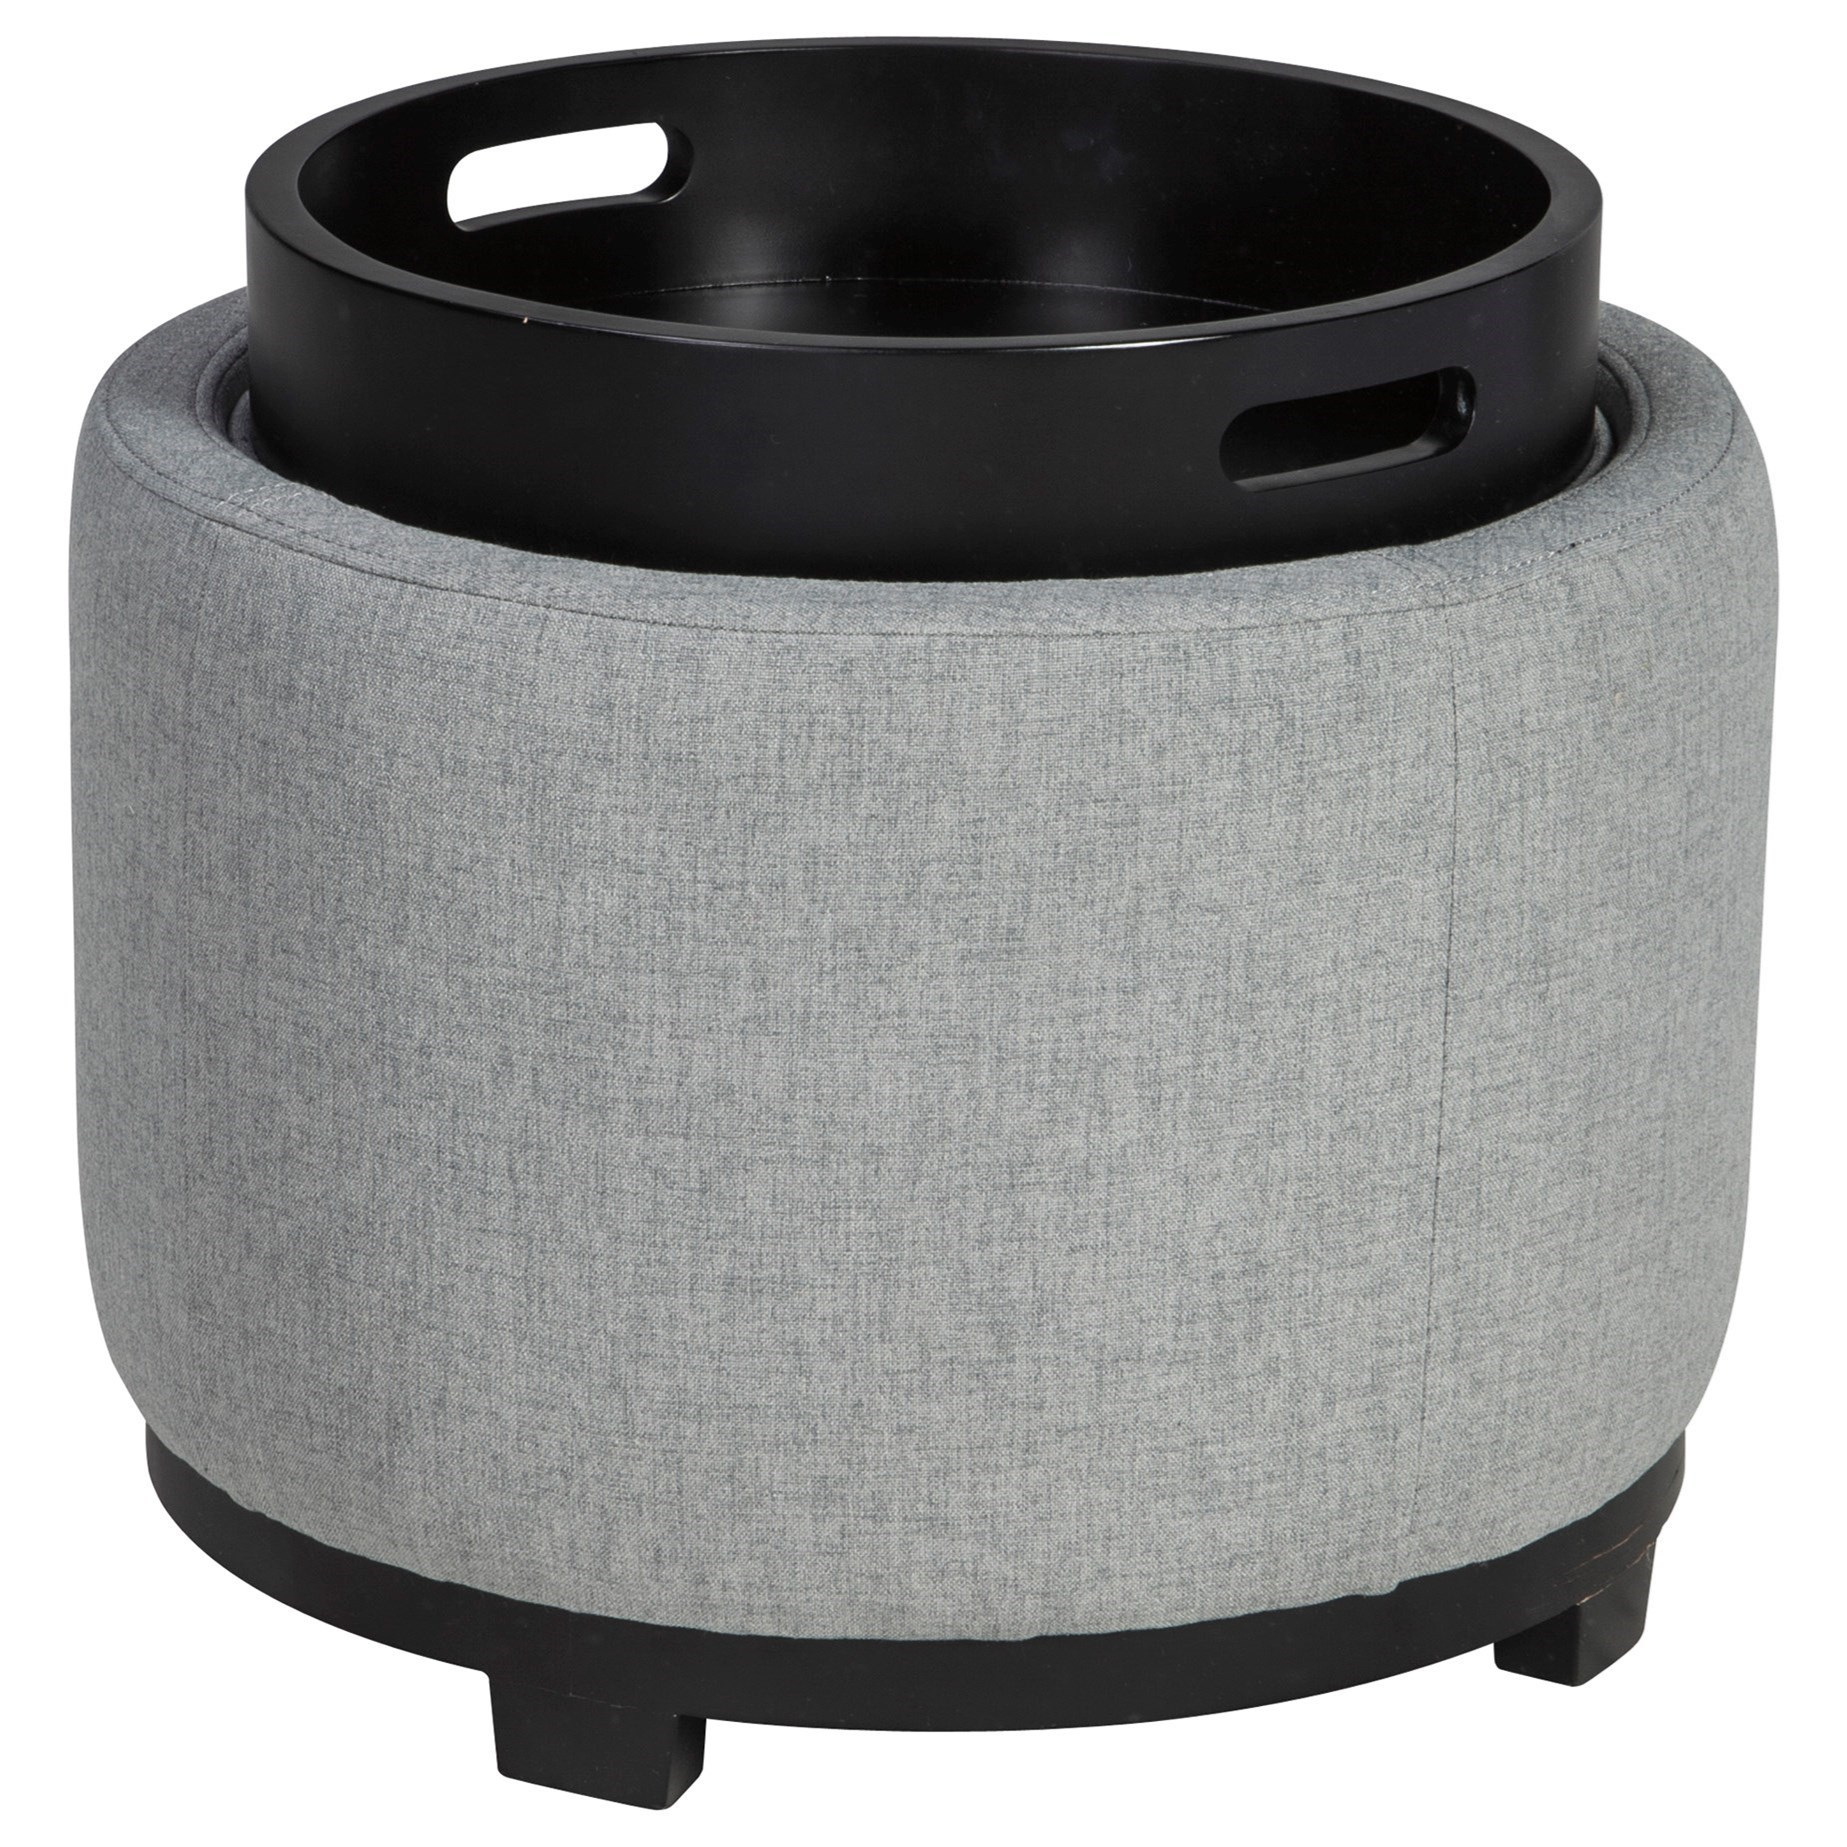 Menga Ottoman With Storage/Reversible Tray Top by Ashley at Morris Home